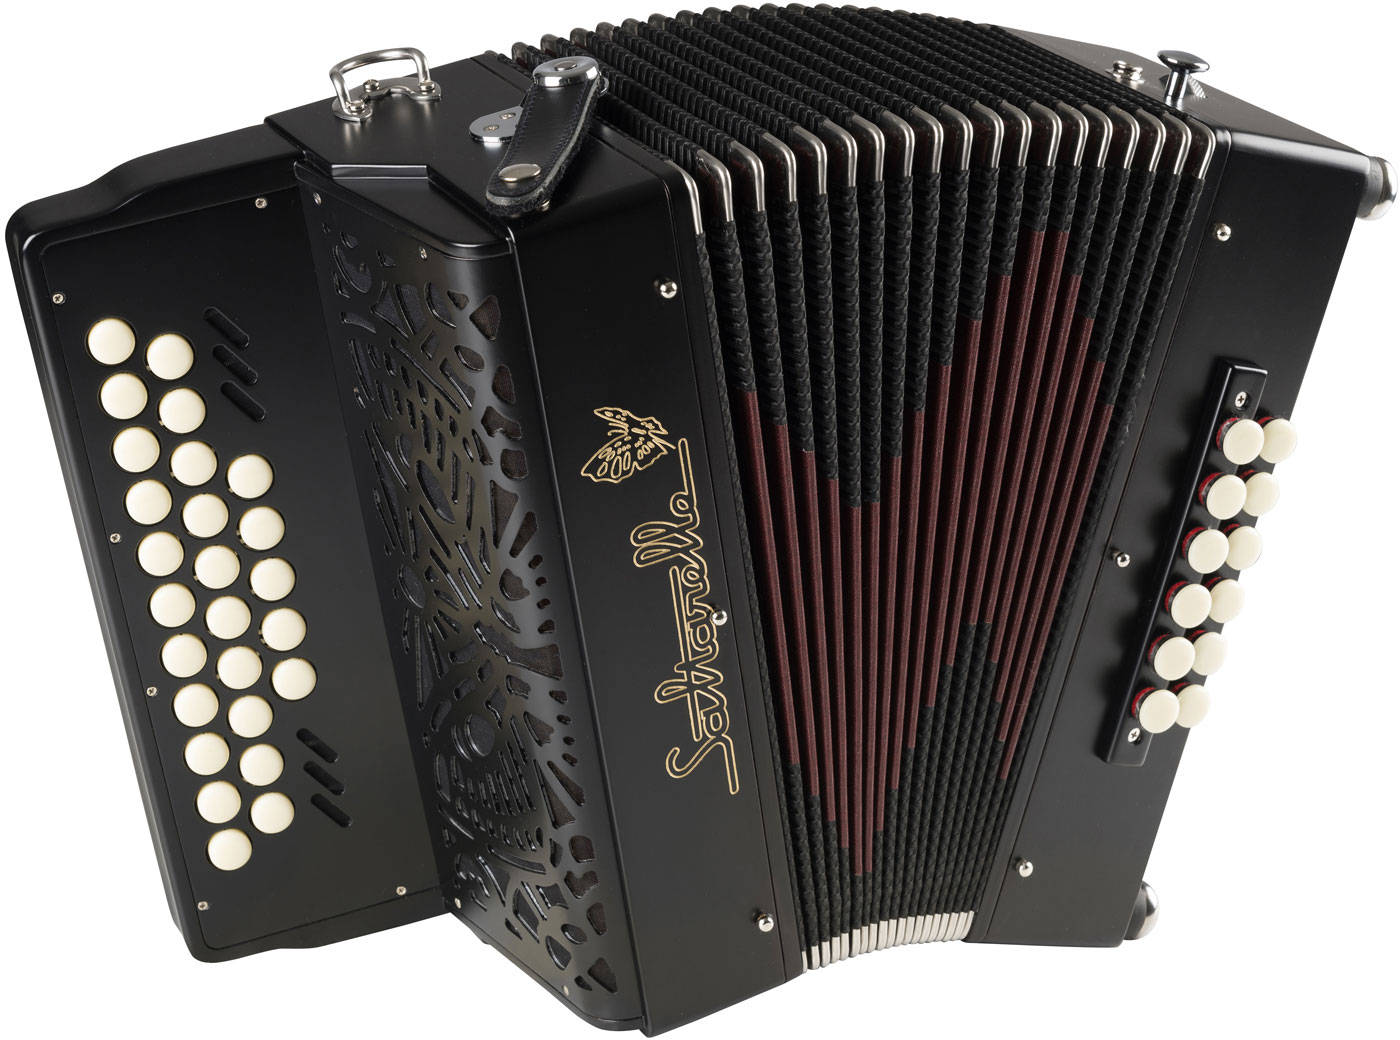 Saltarelle Endymion button accordion